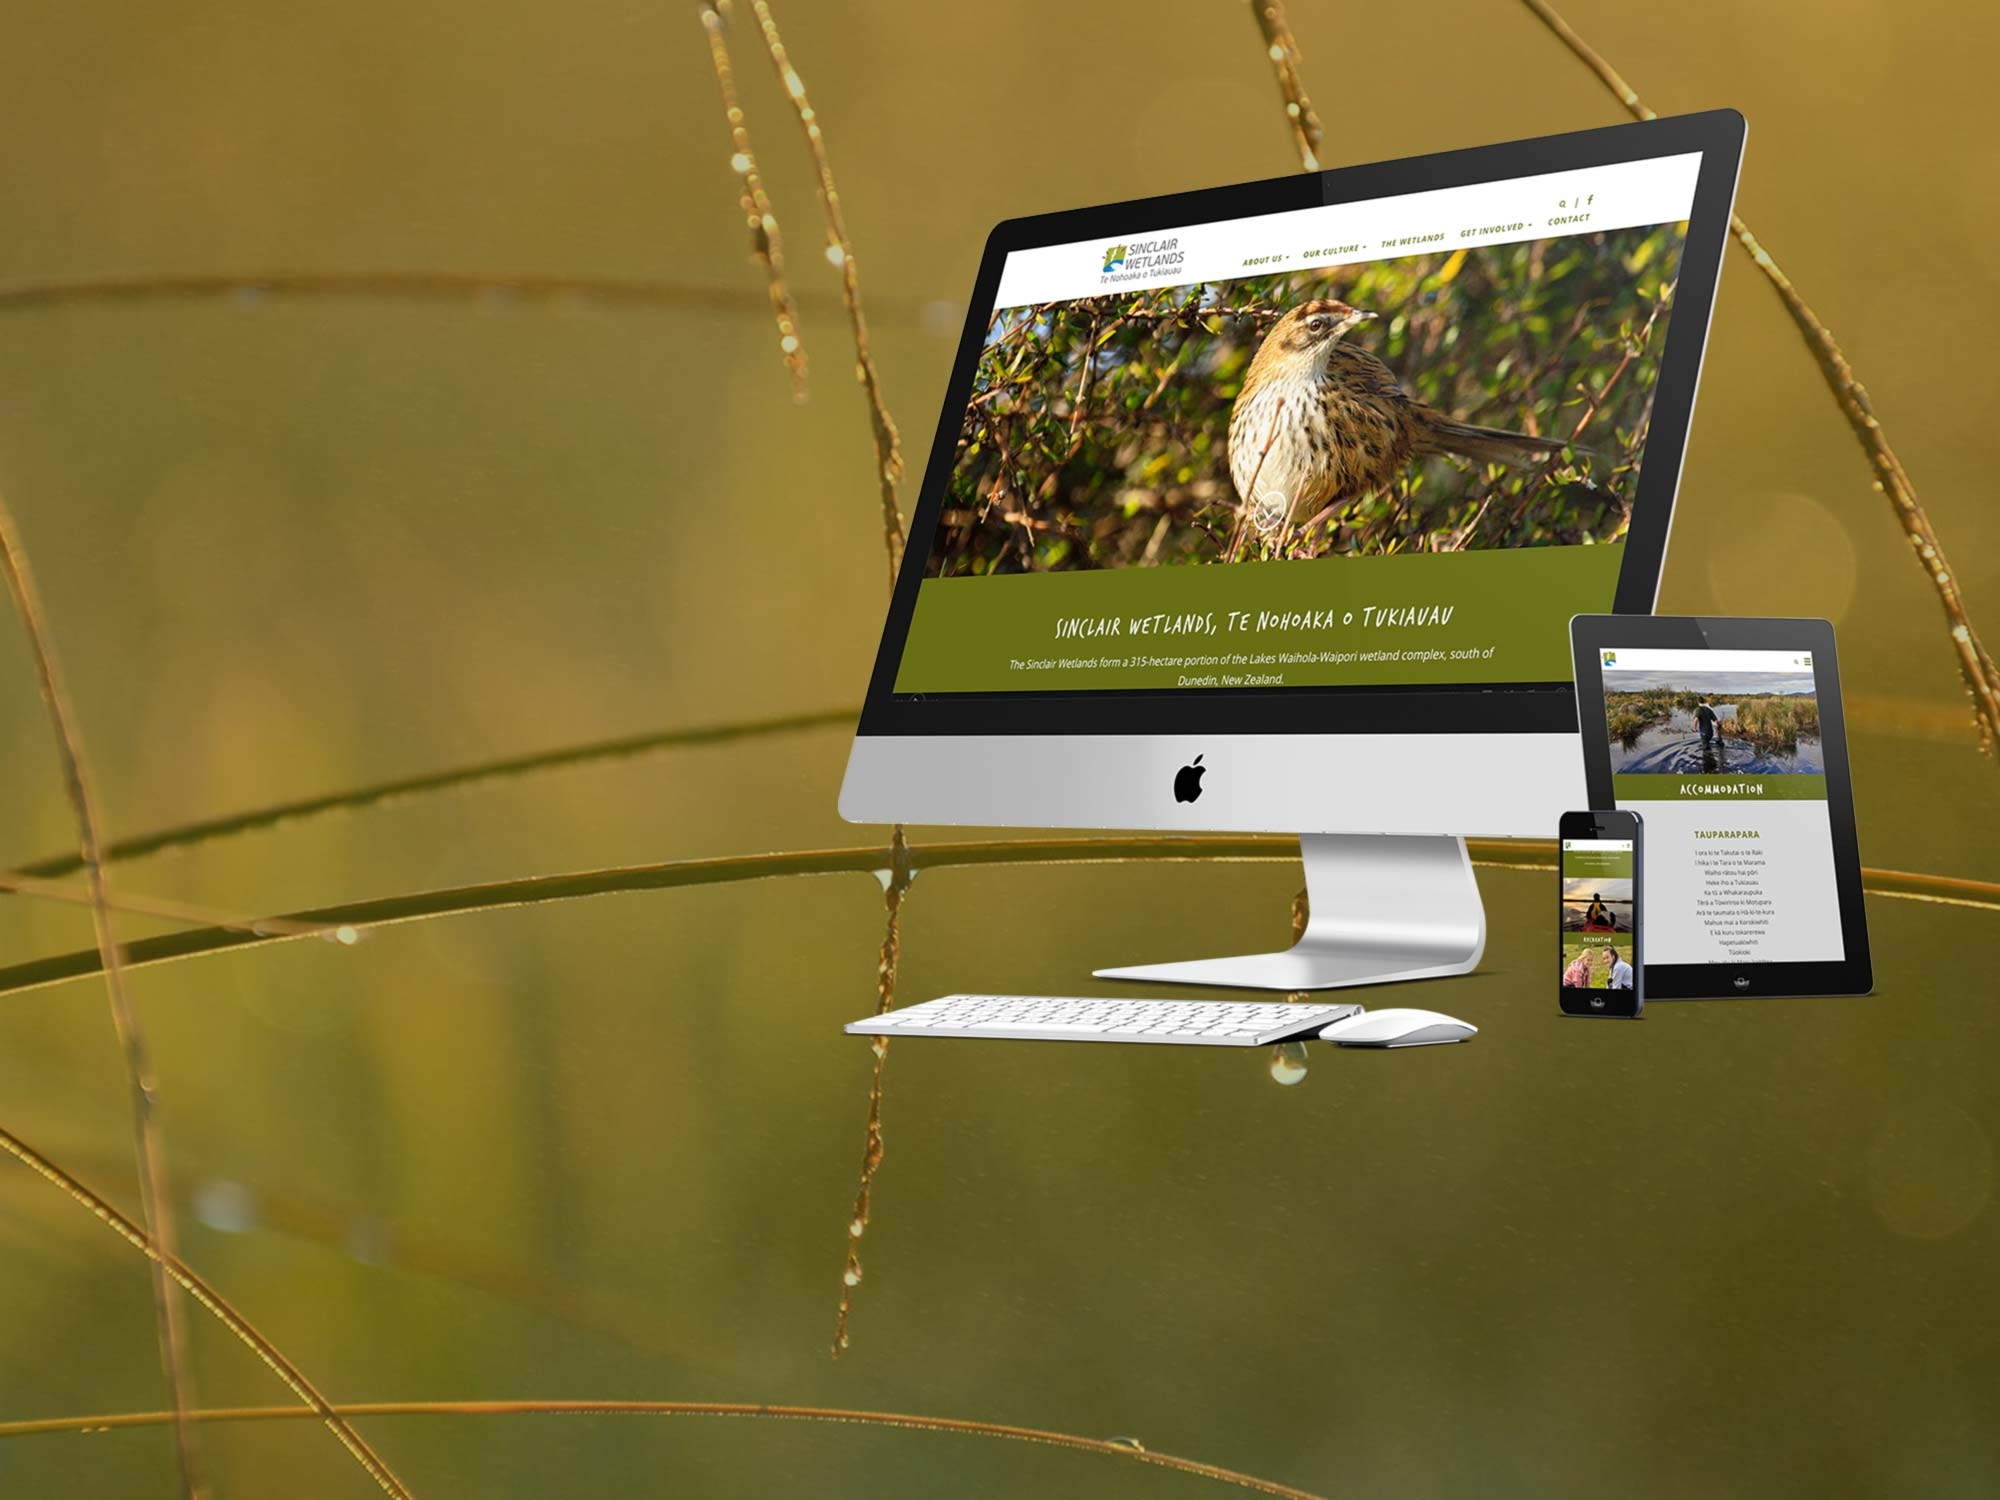 Sinclair Wetlands responsive website development